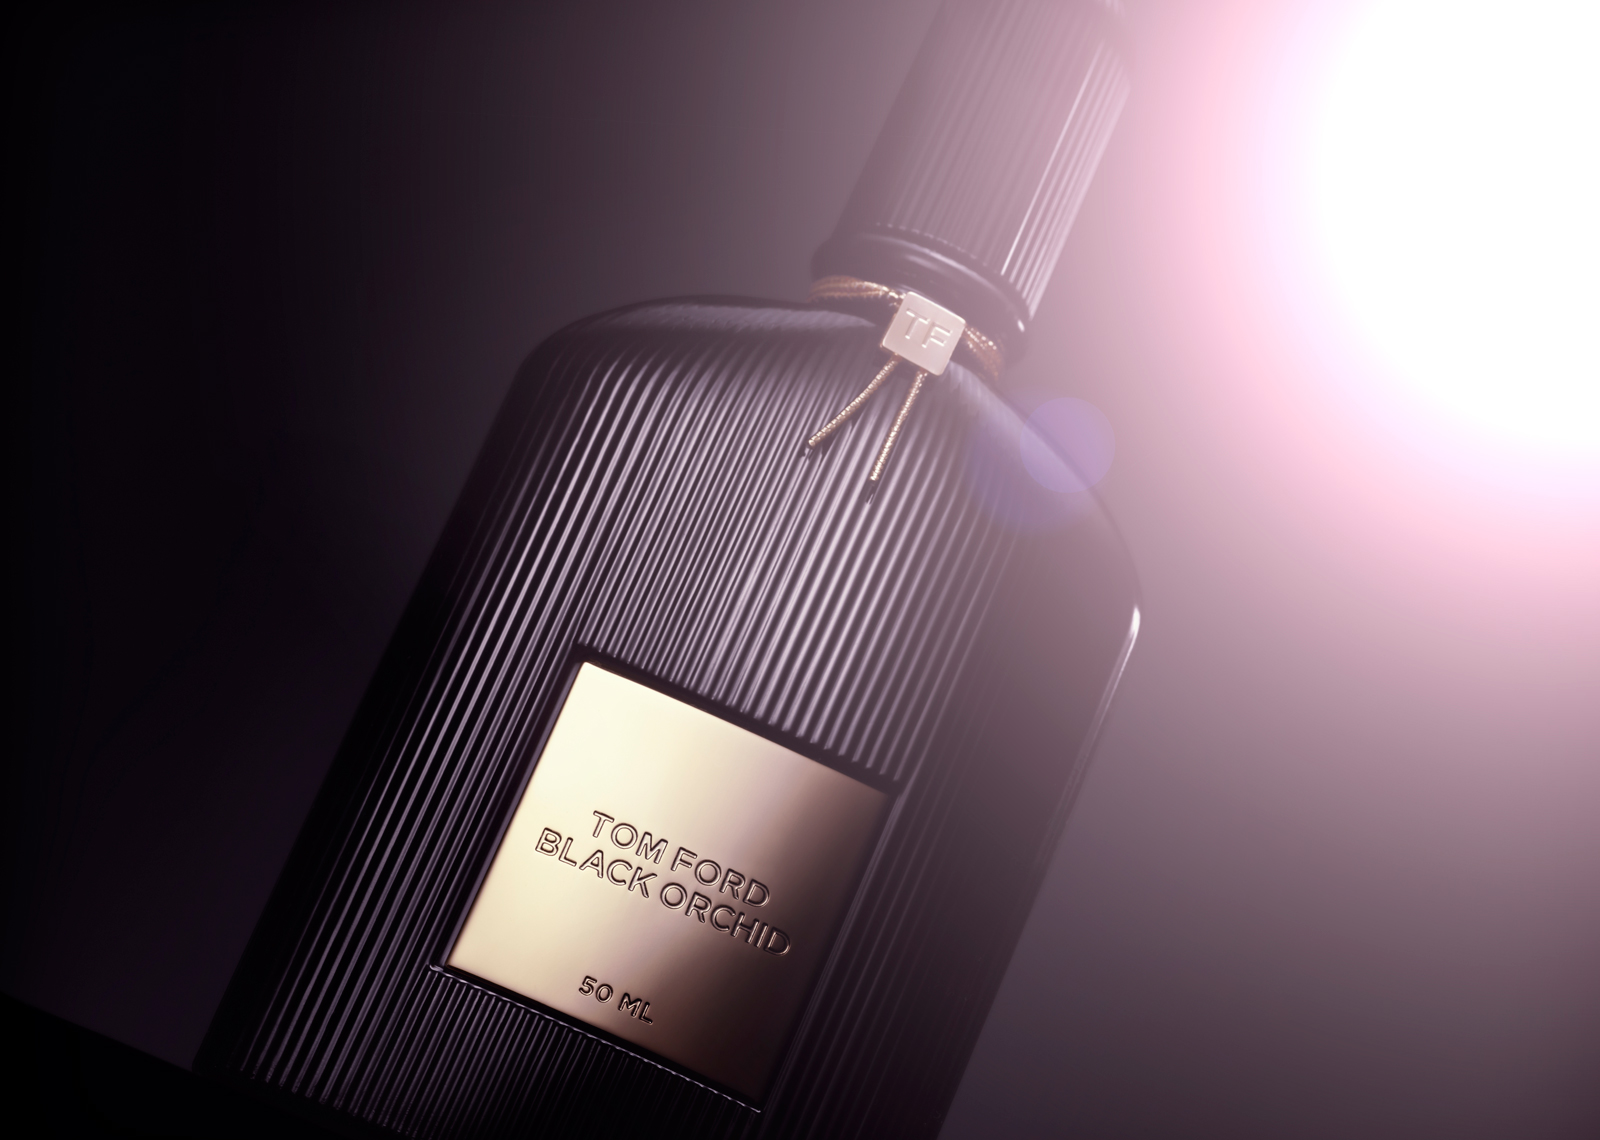 Tom Ford Black Orchid Still Life